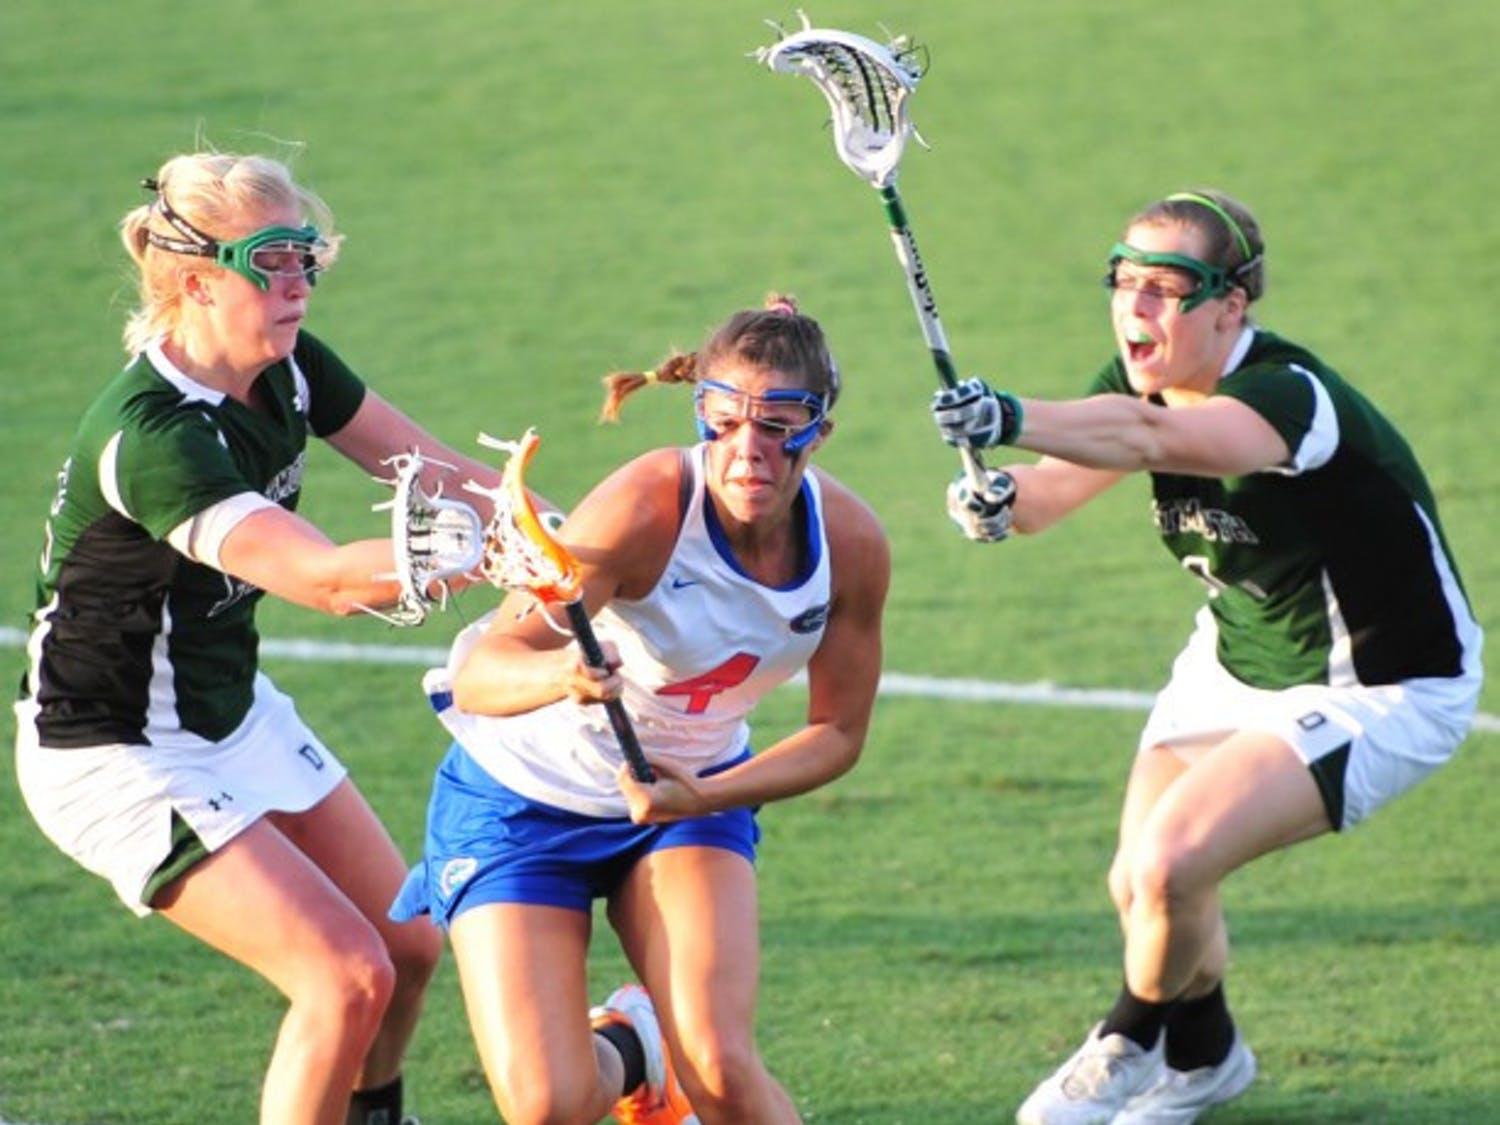 Florida attacker Kitty Cullen splits two Dartmouth defenders while attacking the goal during the Gators' 20-4 win against the Big Green on Tuesday. Cullen scored five goals.